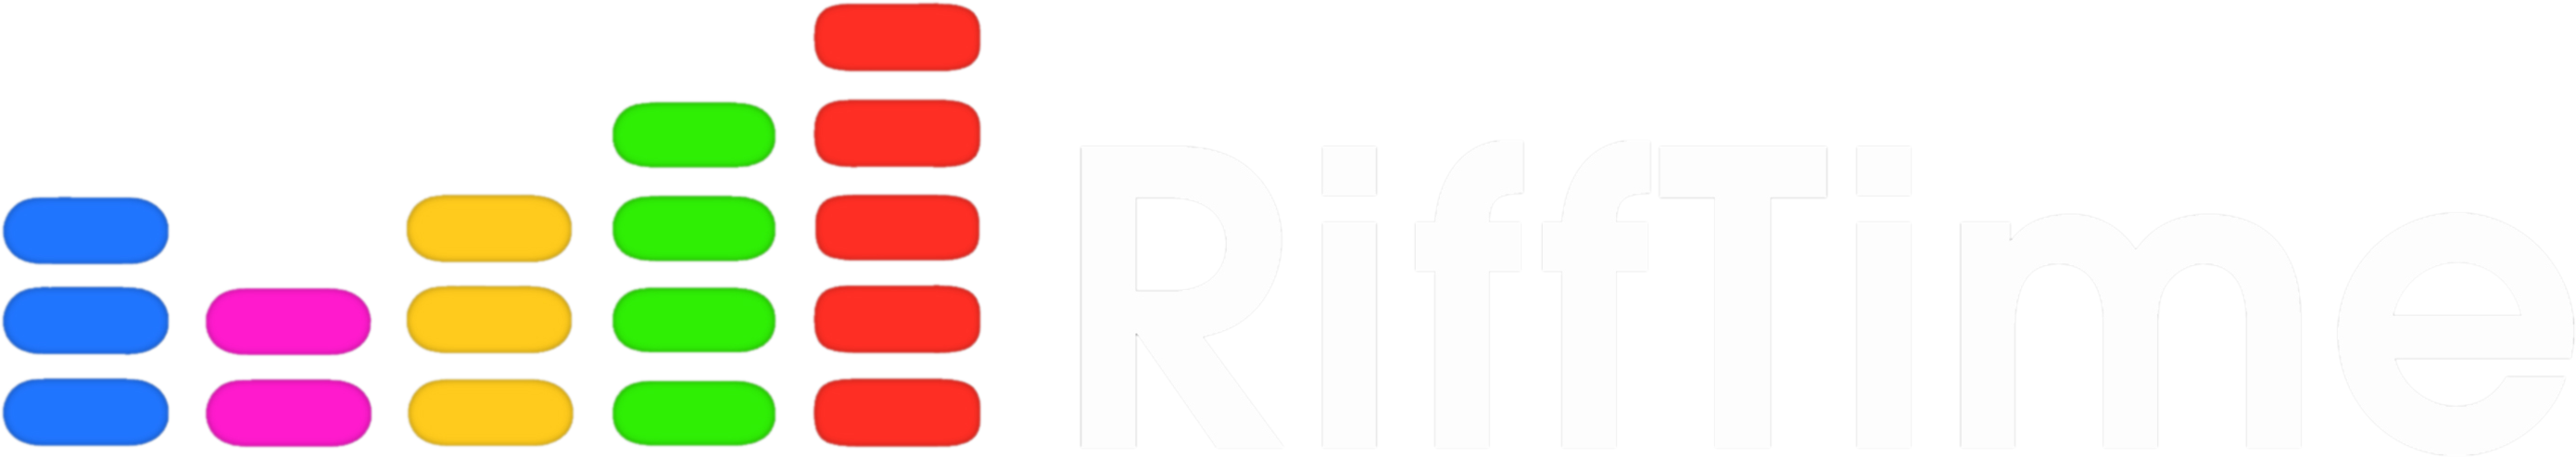 Rifftime logo transparent